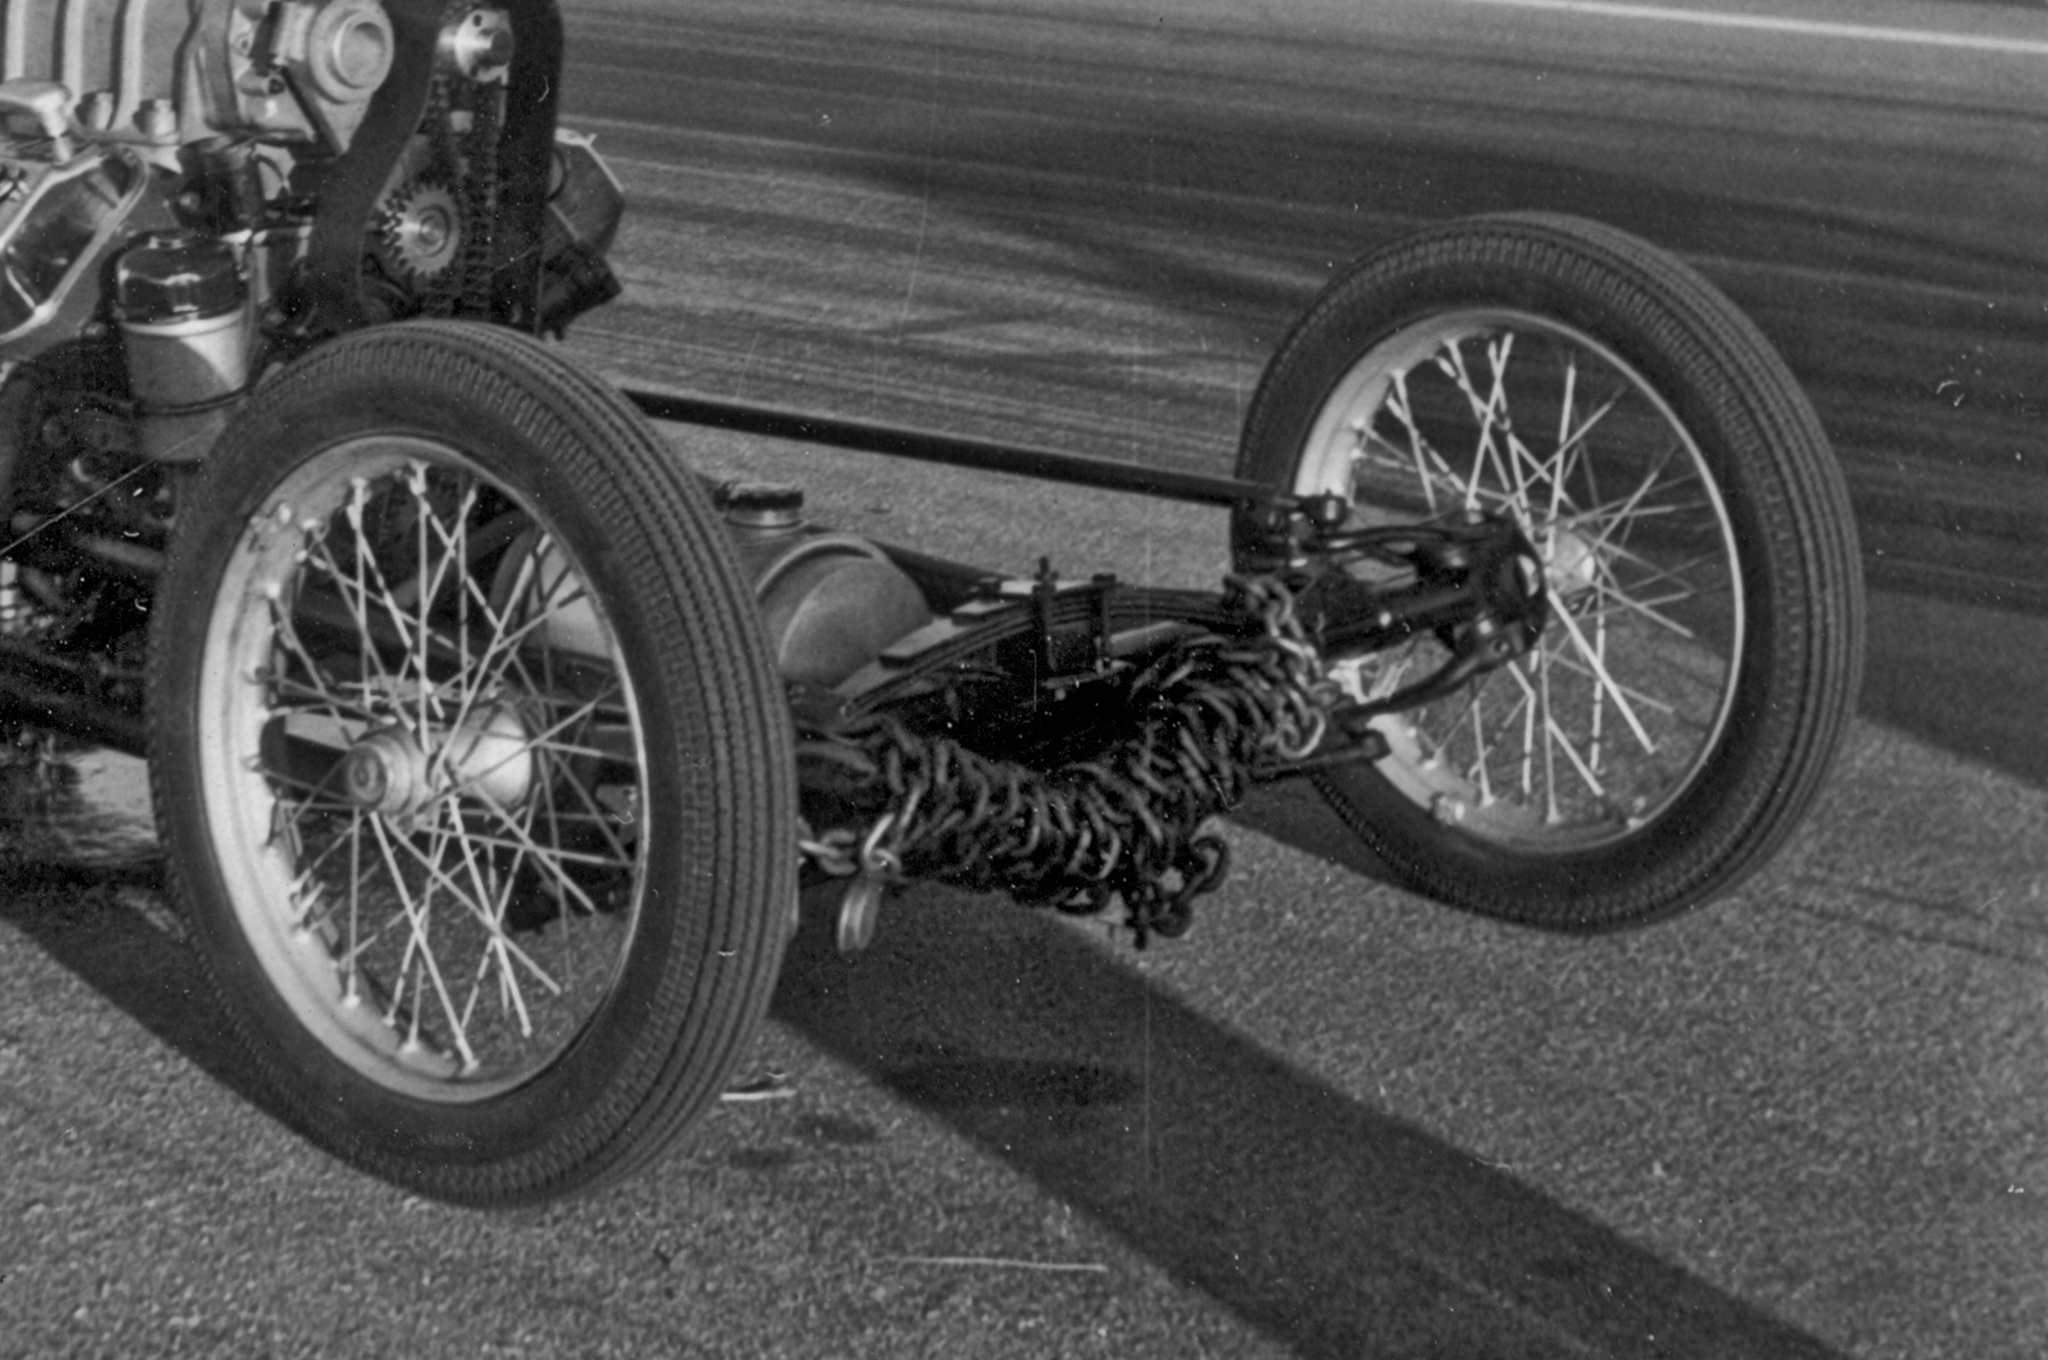 Naturally, the shorter wheelbase made the car prone to wheelstand. The team initially wrapped the axle with logger's chain, but later resorted to bolting an entire floor jack to the axle.